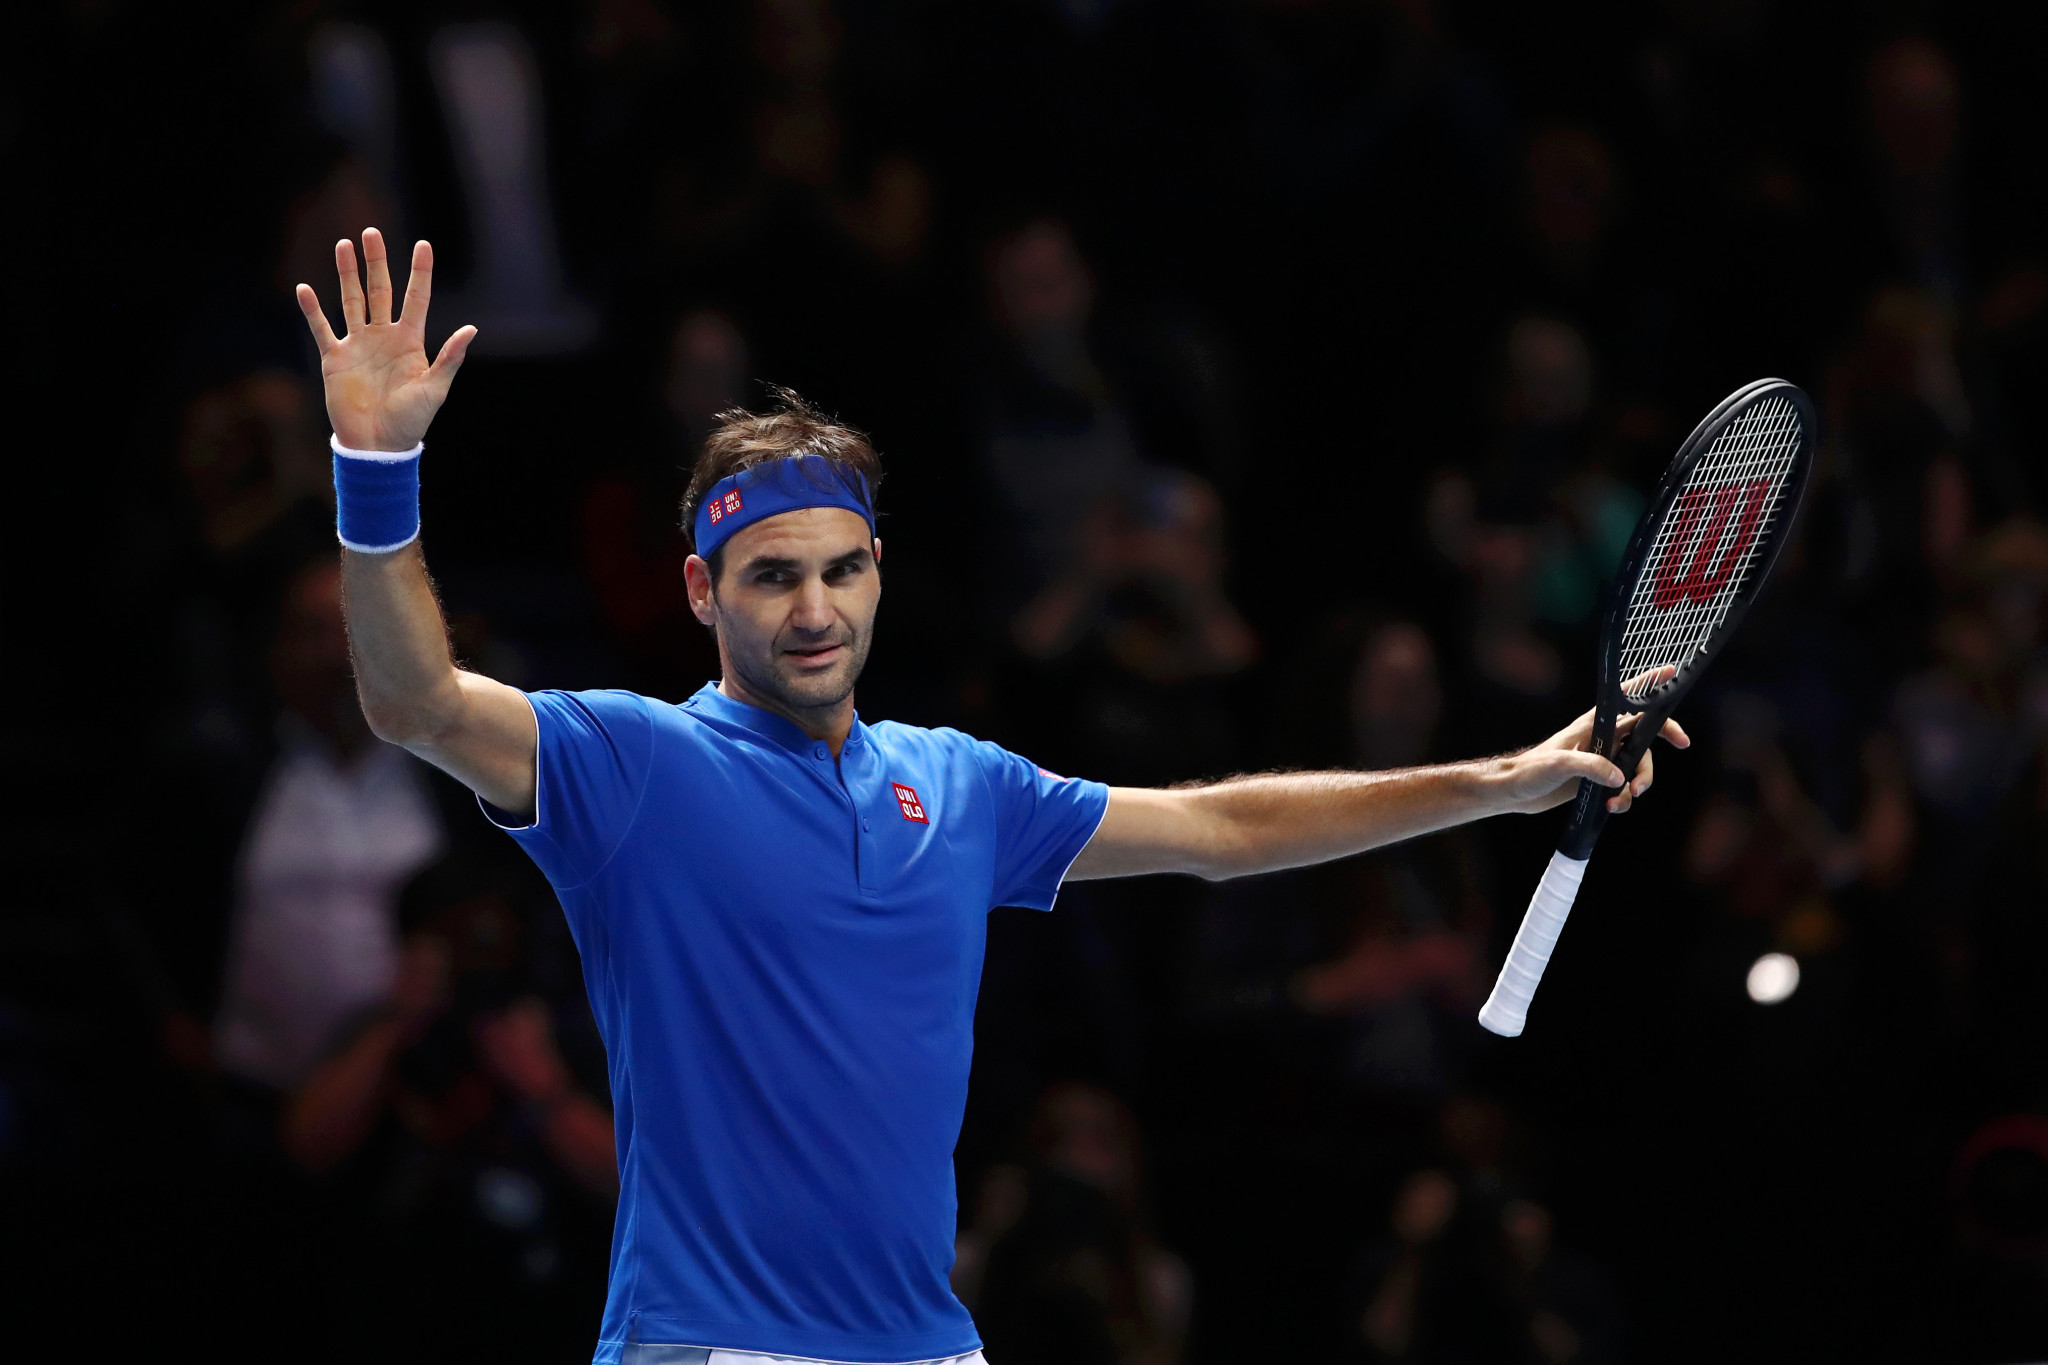 Federer beats Anderson to reach ATP Finals last four as group winner